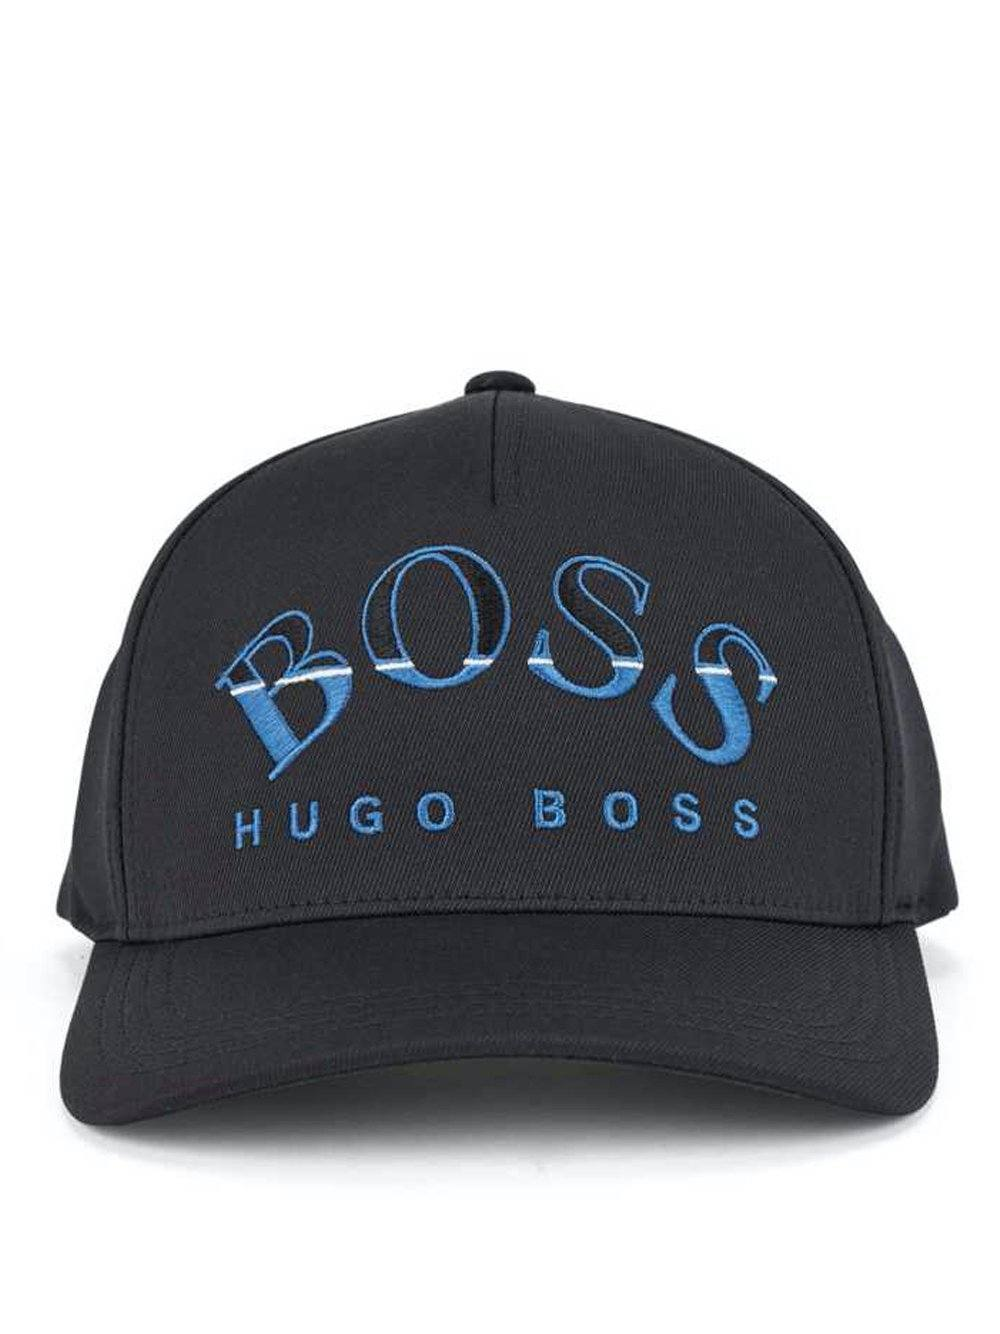 BOSS Curved Logo Cap Black/Blue